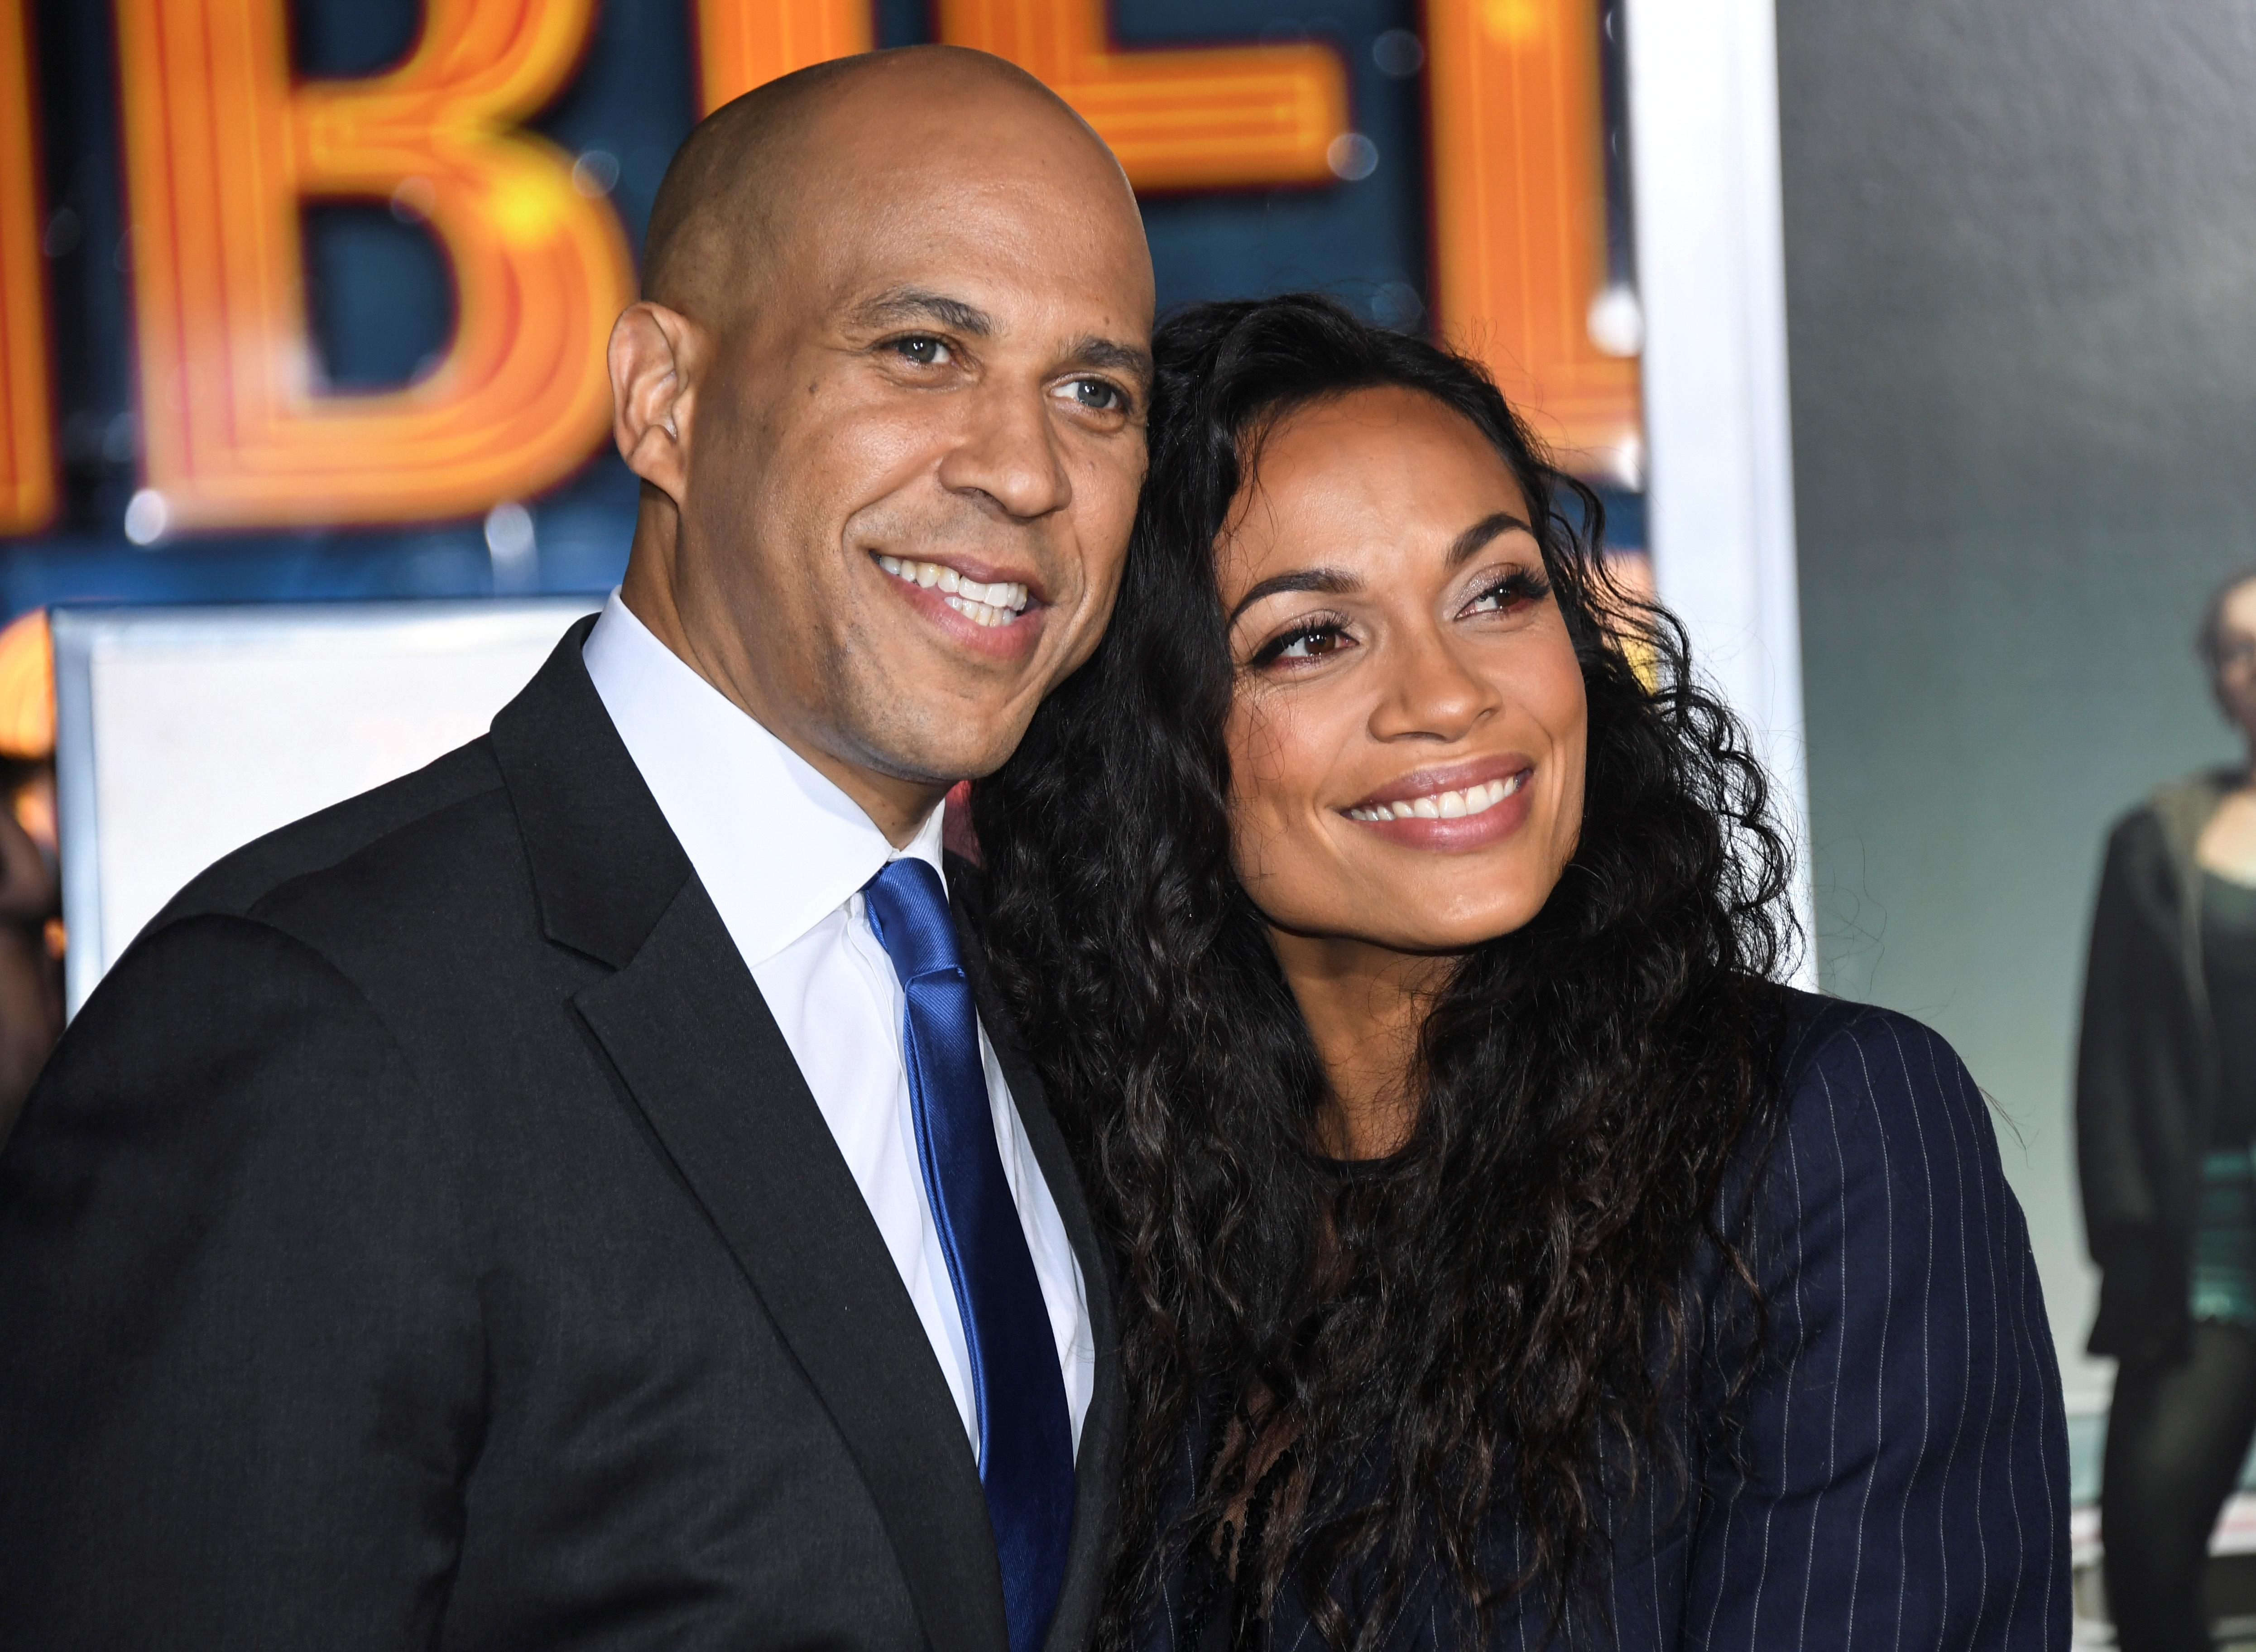 Rosario Dawson says she's 'in love' with Cory Booker — even though he's not 'super-smooth'